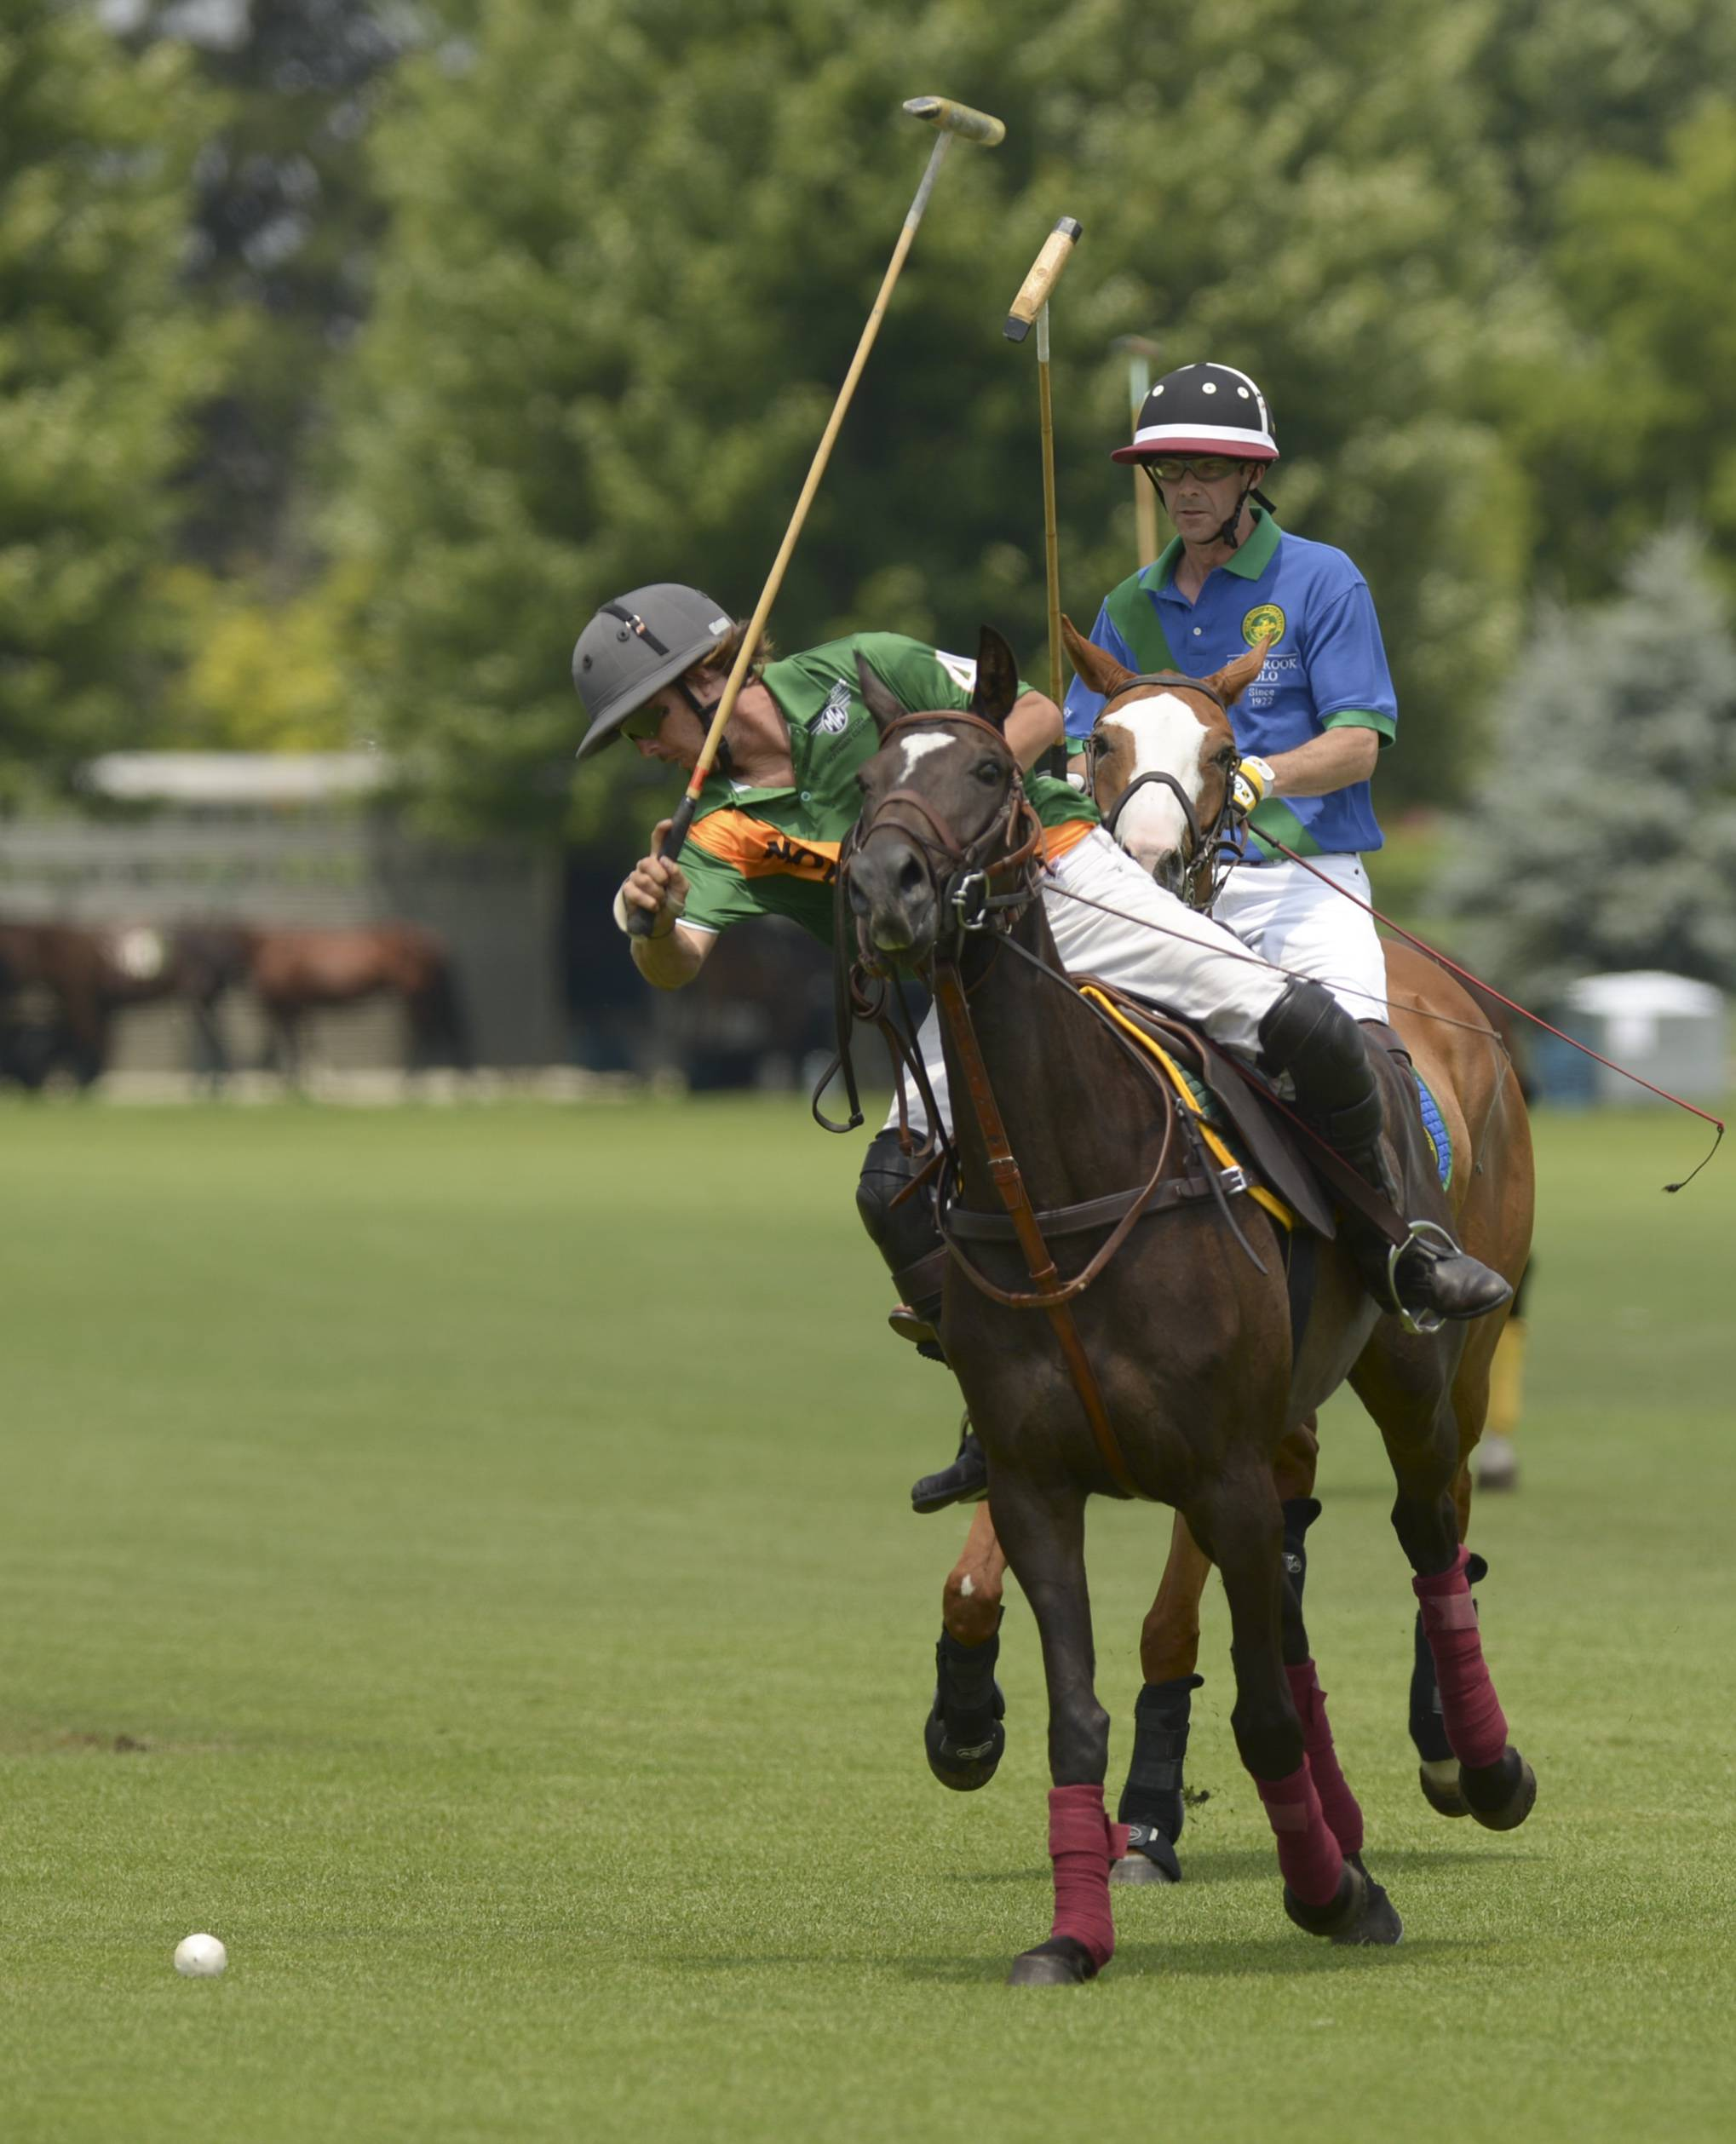 The Oak Brook Polo Club play Motor Werks on Sunday to kick off the 2014 polo season in Oak Brook. Sunday was also Hat Day at the polo club, one of several theme days planned for the season.